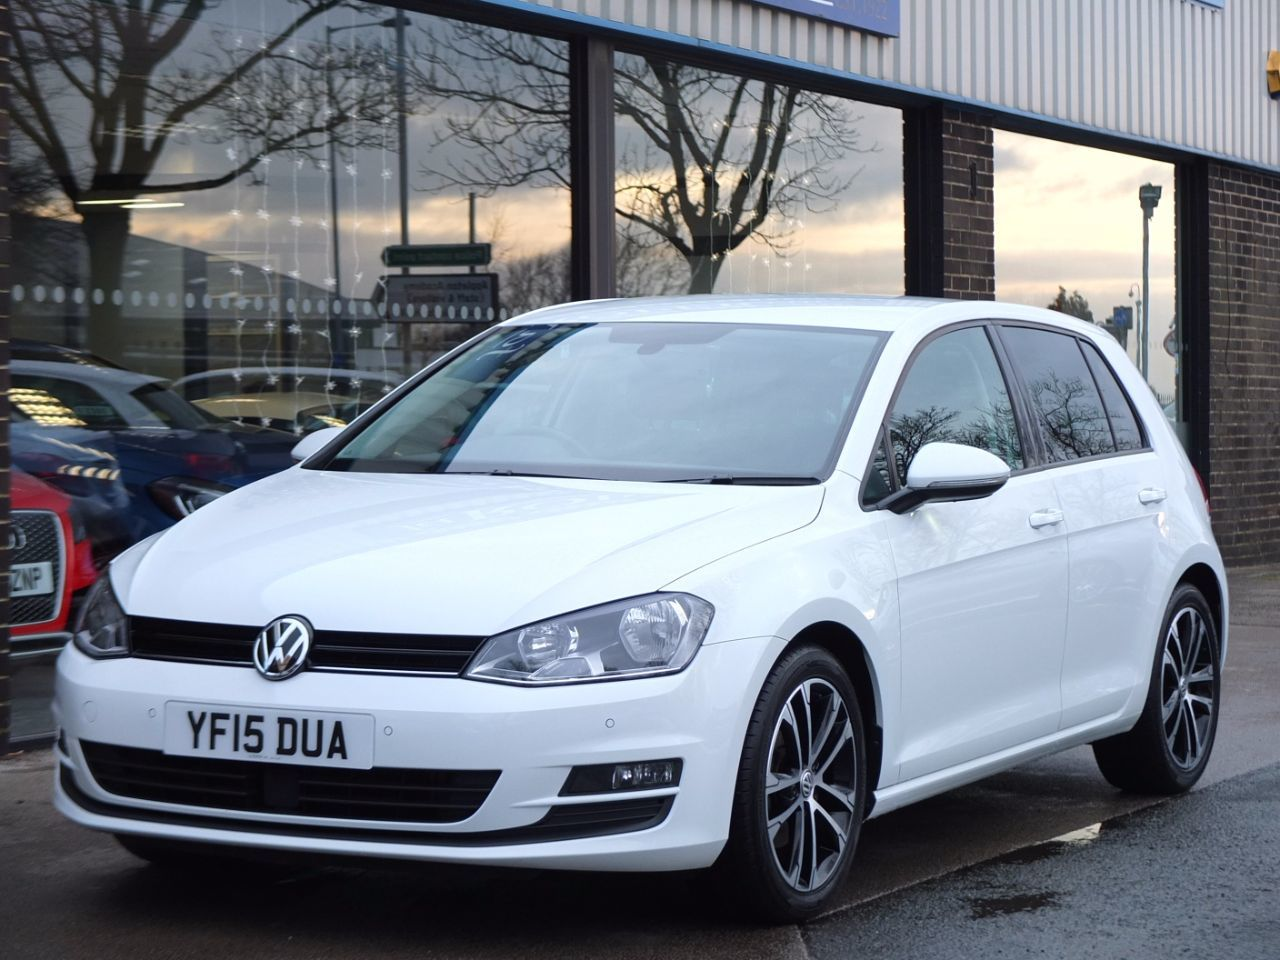 Volkswagen Golf 1.4 TSI 125ps BlueMotion Tech Match 5 door Hatchback Petrol Pure WhiteVolkswagen Golf 1.4 TSI 125ps BlueMotion Tech Match 5 door Hatchback Petrol Pure White at fa Roper Ltd Bradford